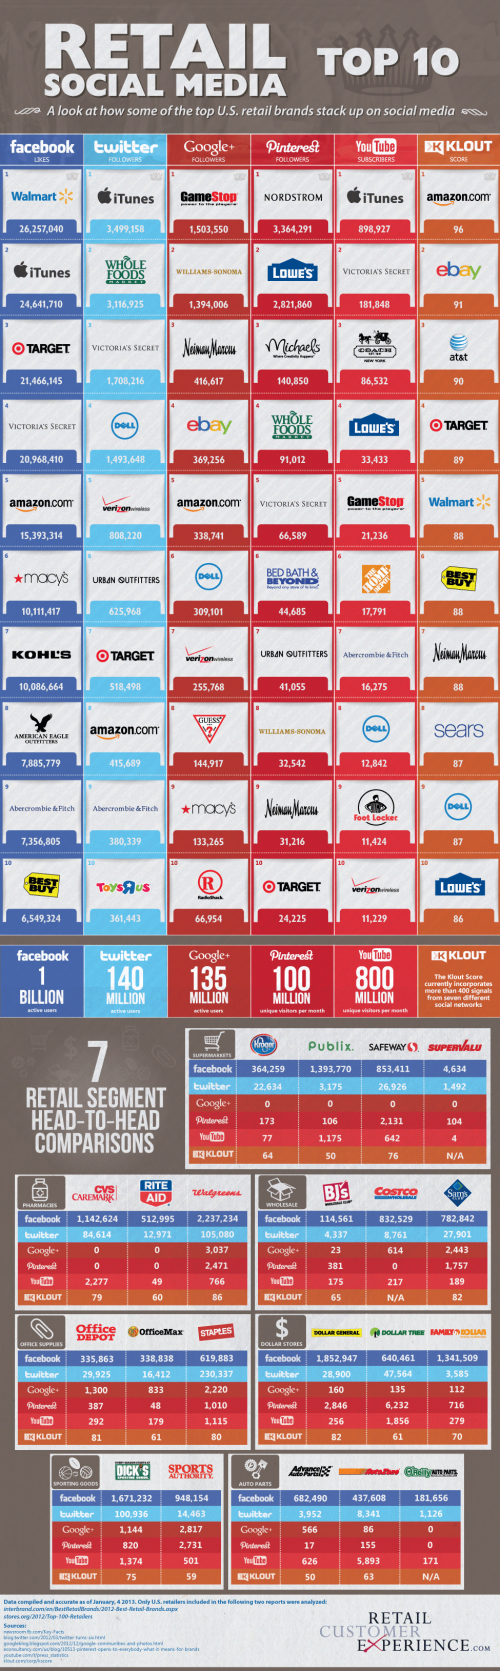 Retail-Social-Media-Top-10-Infographic